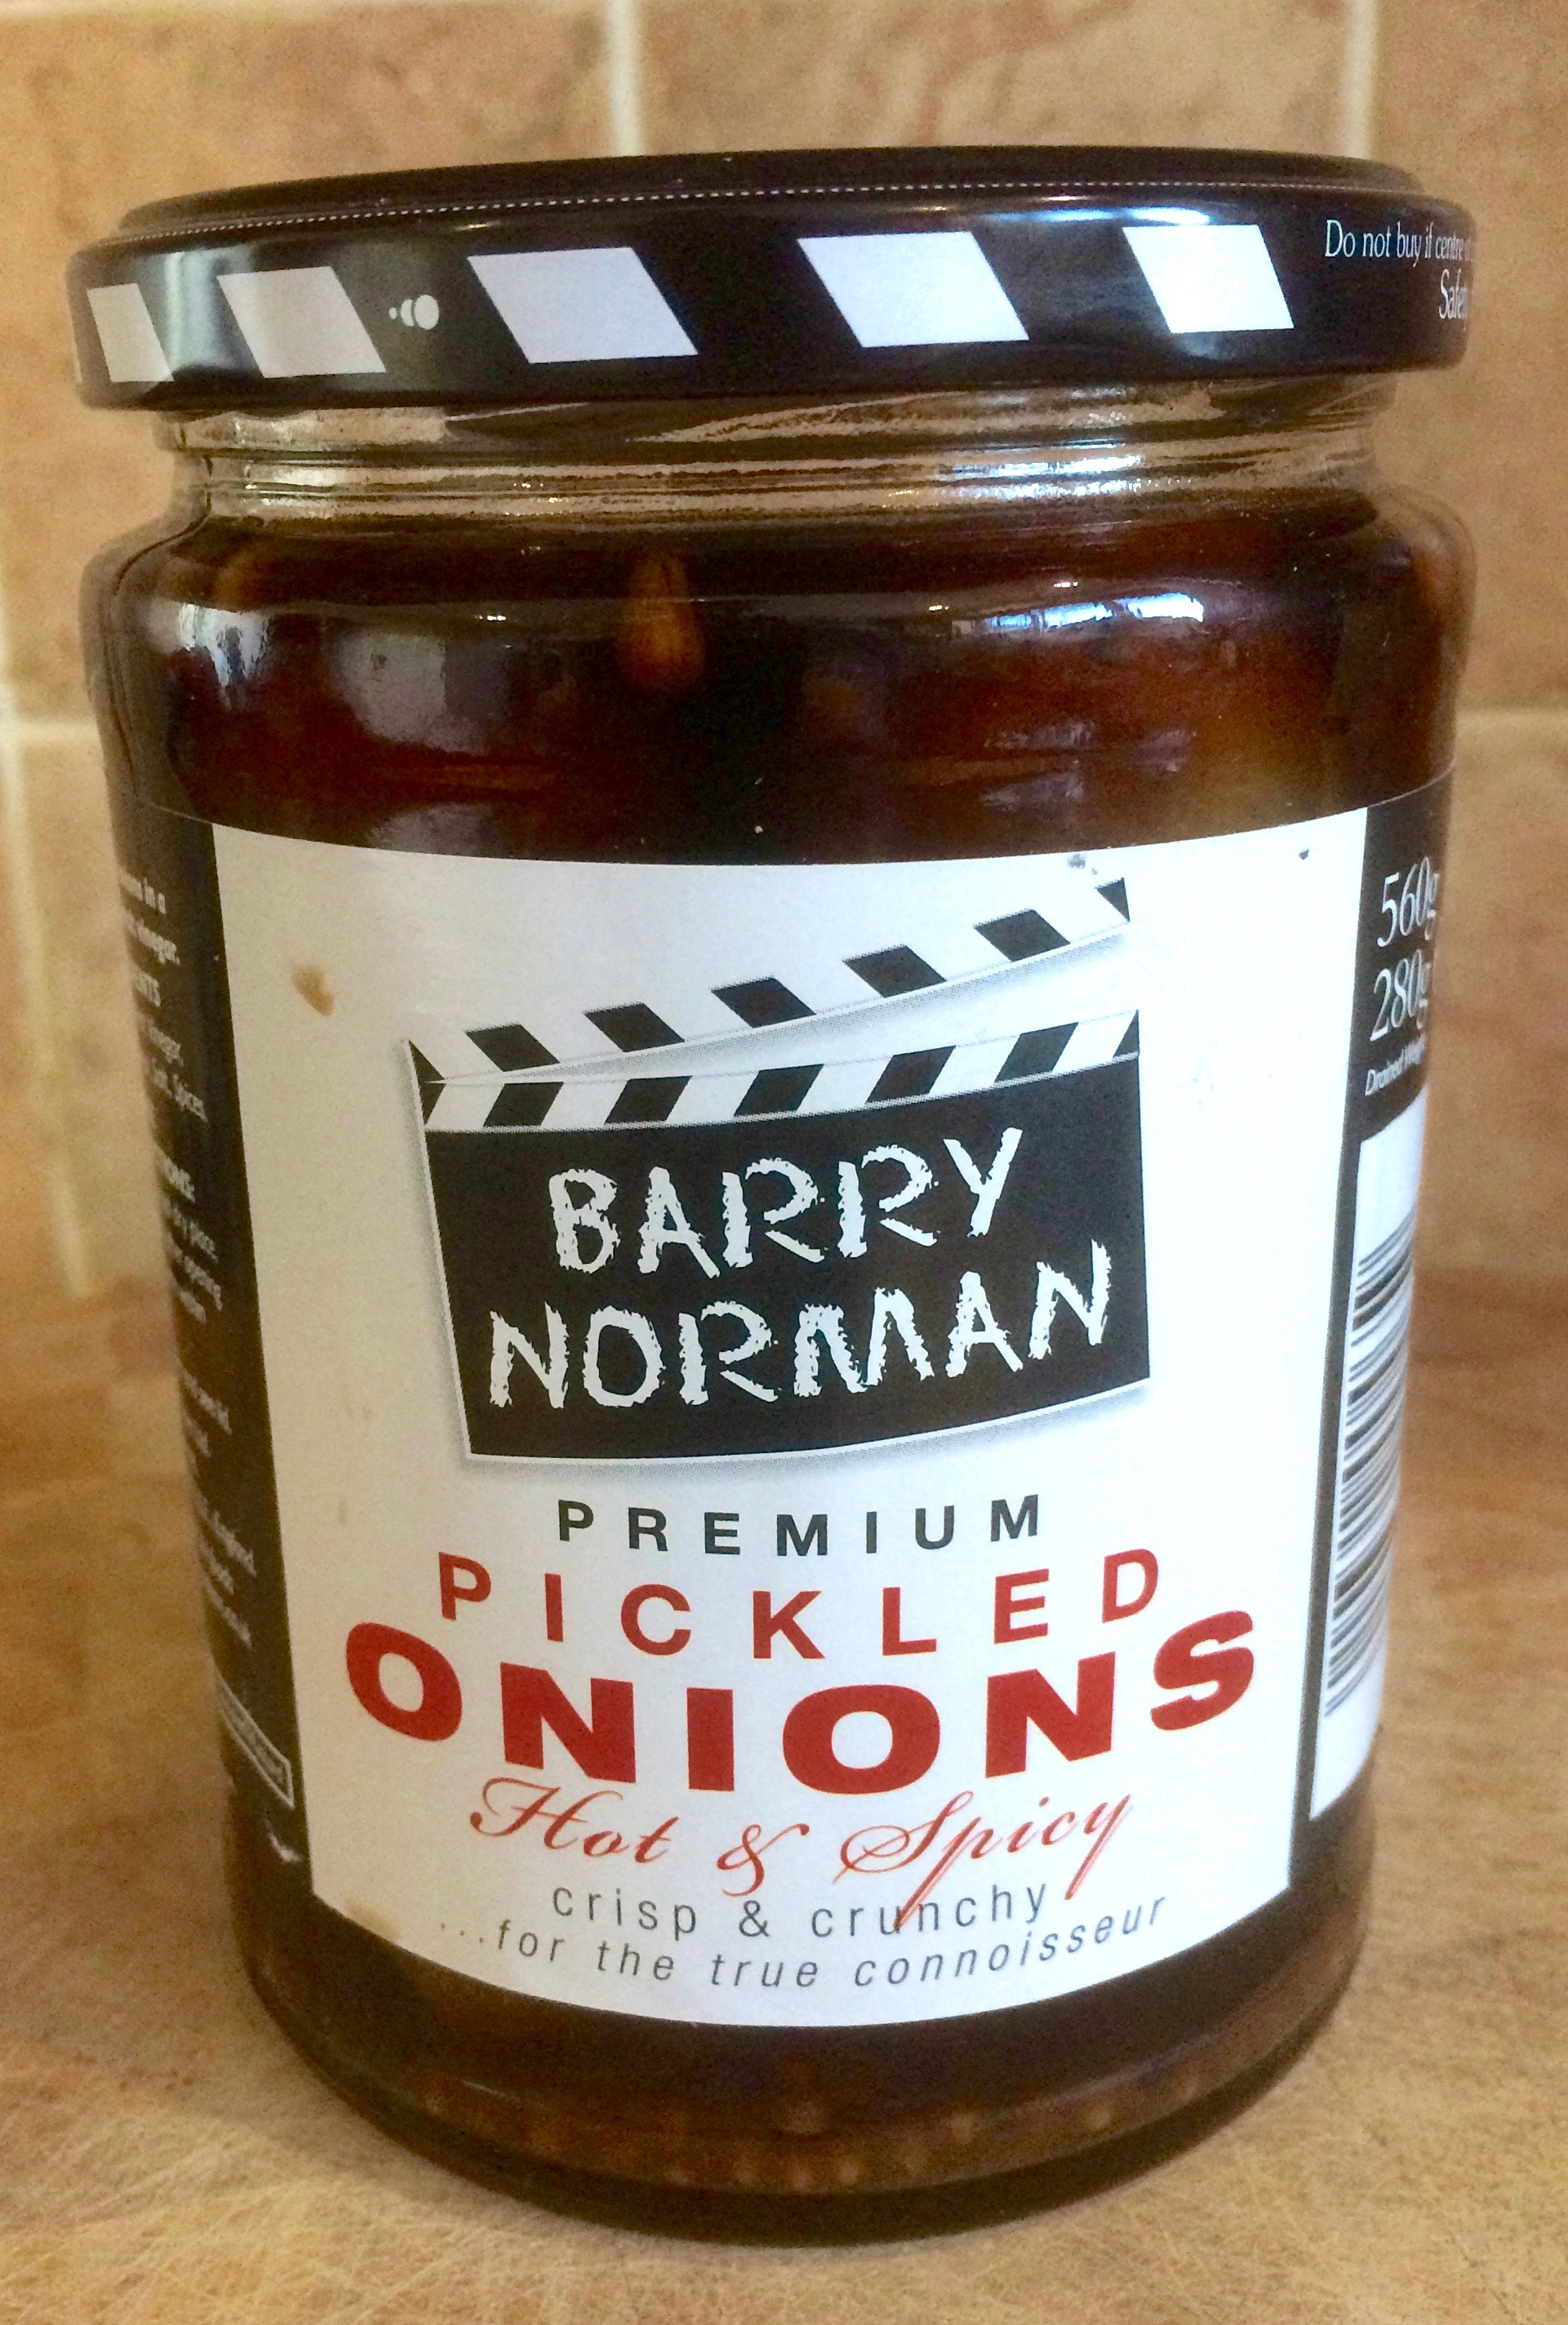 These are the only pickled onions I ever recommend….